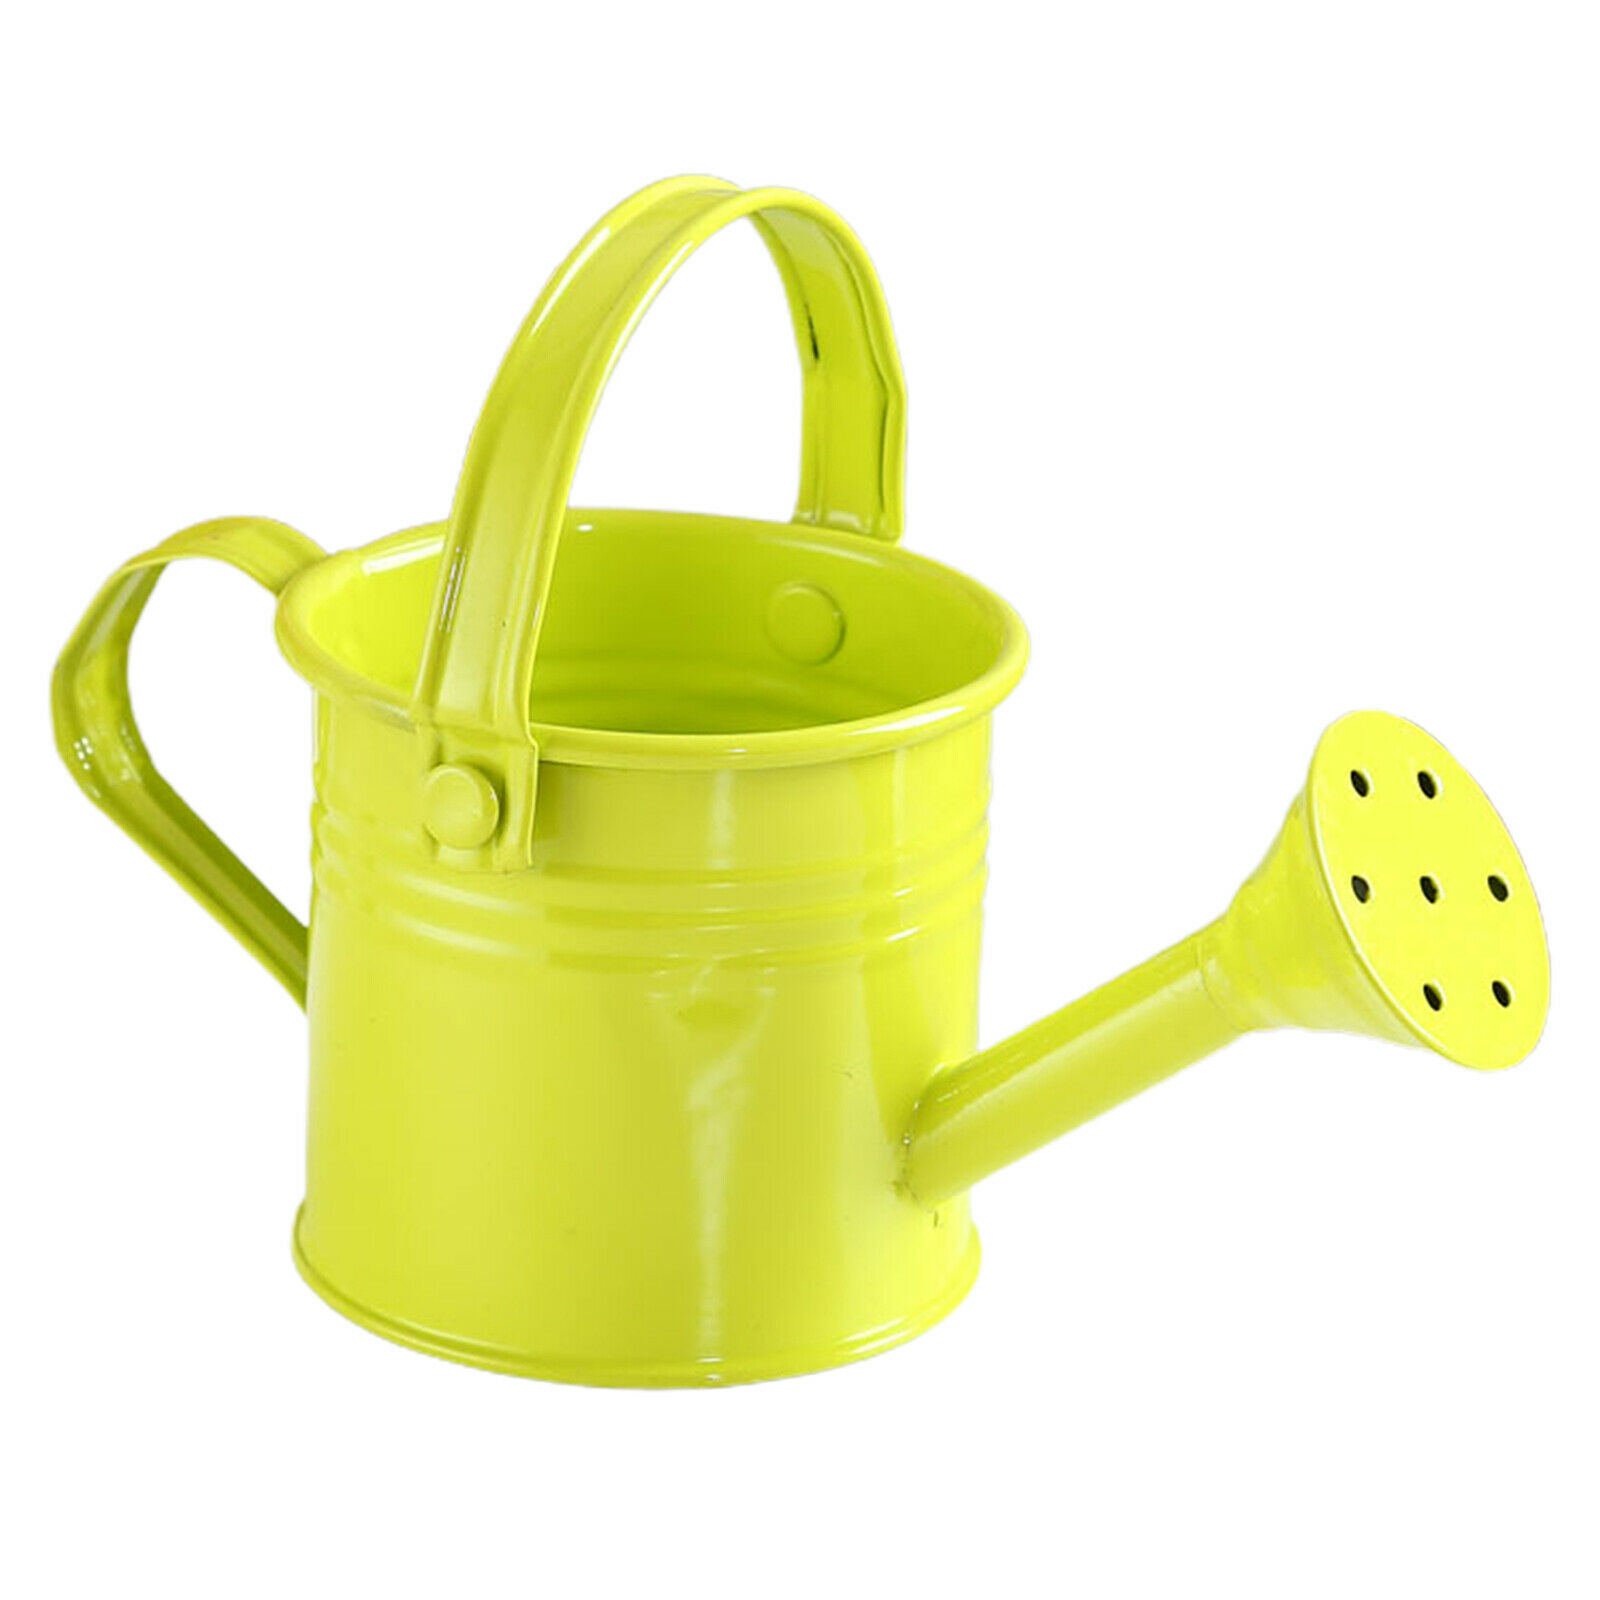 Tin Watering Can Spray Bottle Metal Sprinkled With Handle Gardening Tools Shower